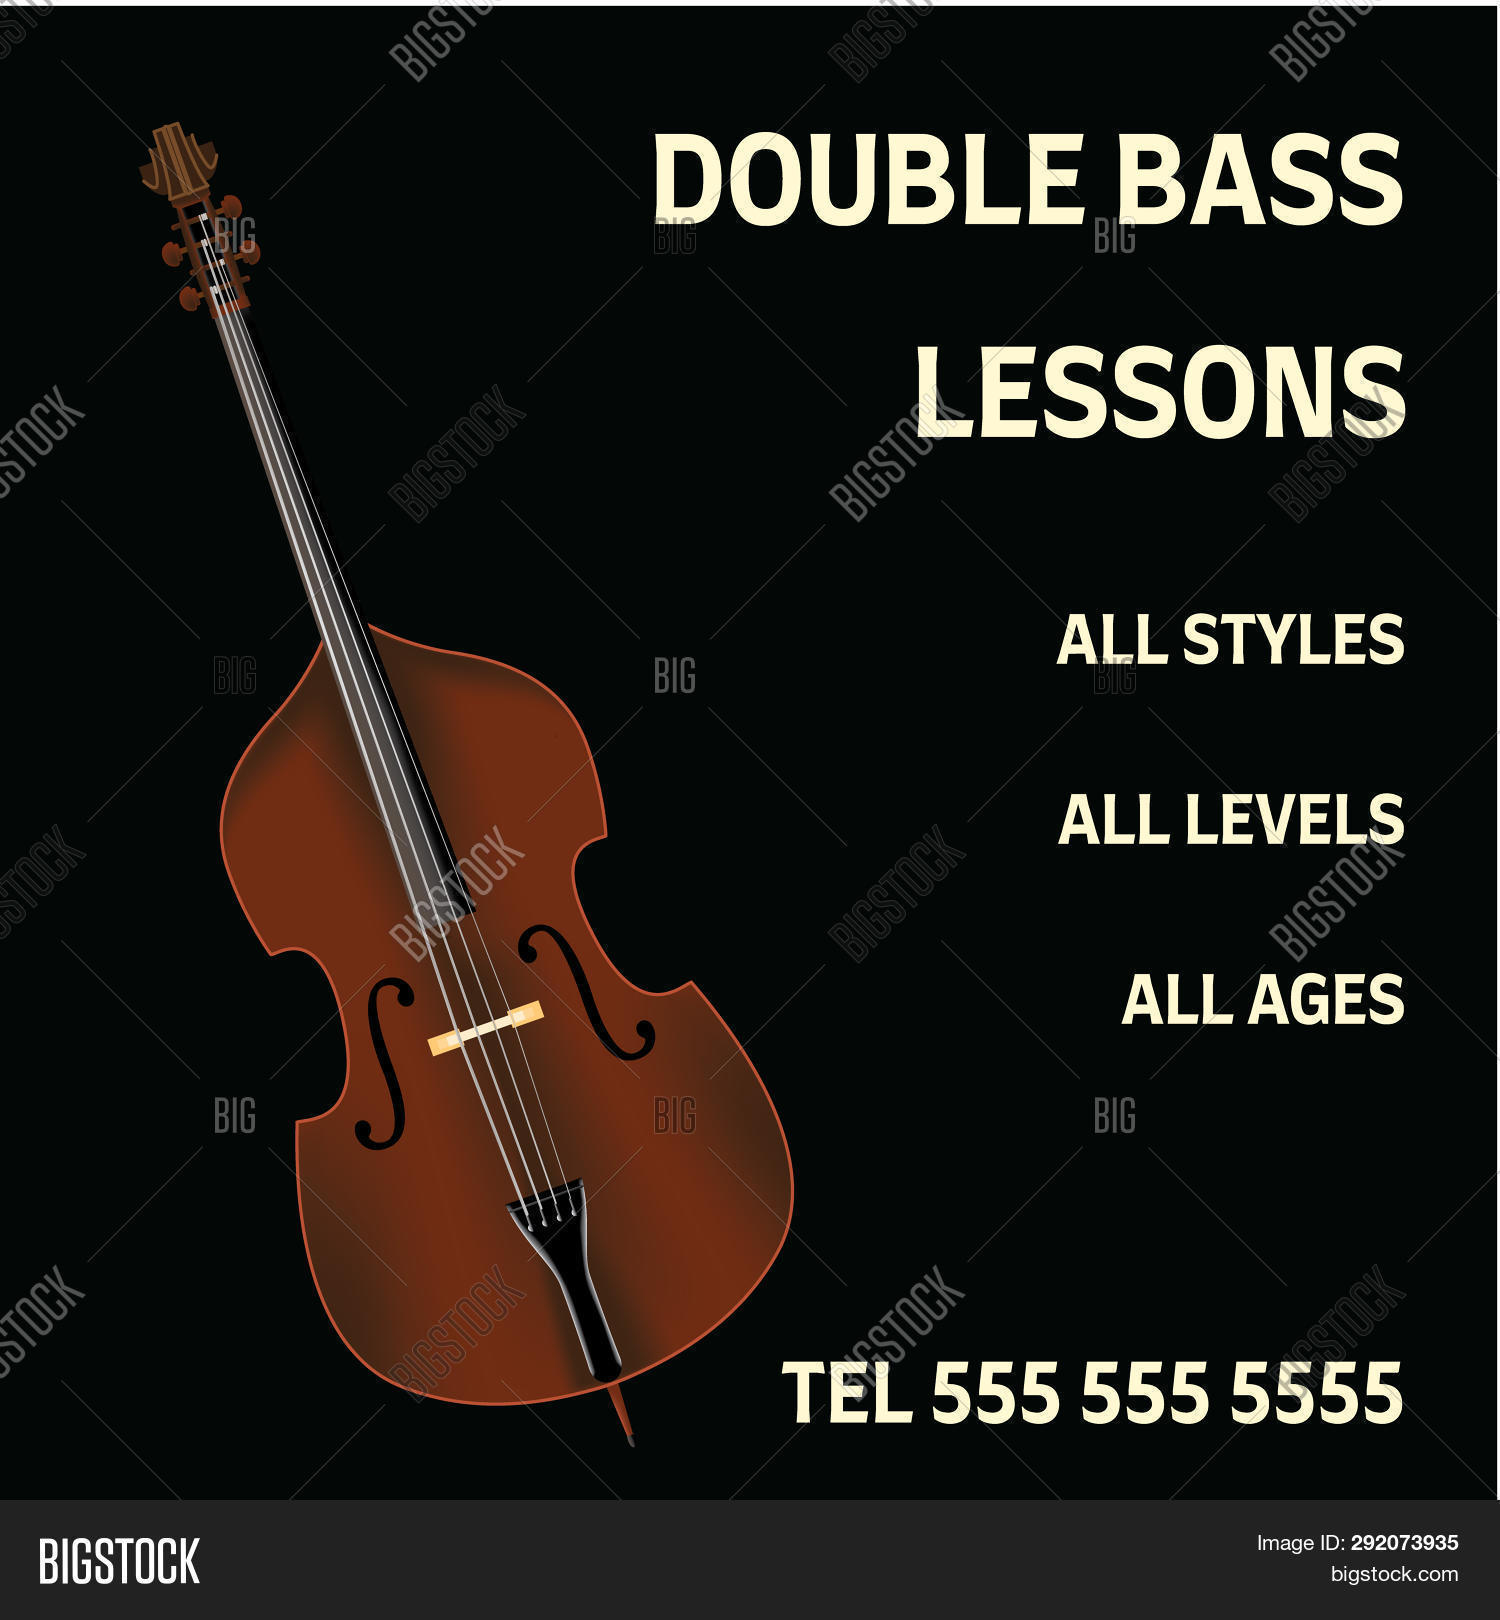 Double Bass Lessons Image & Photo (Free Trial) | Bigstock